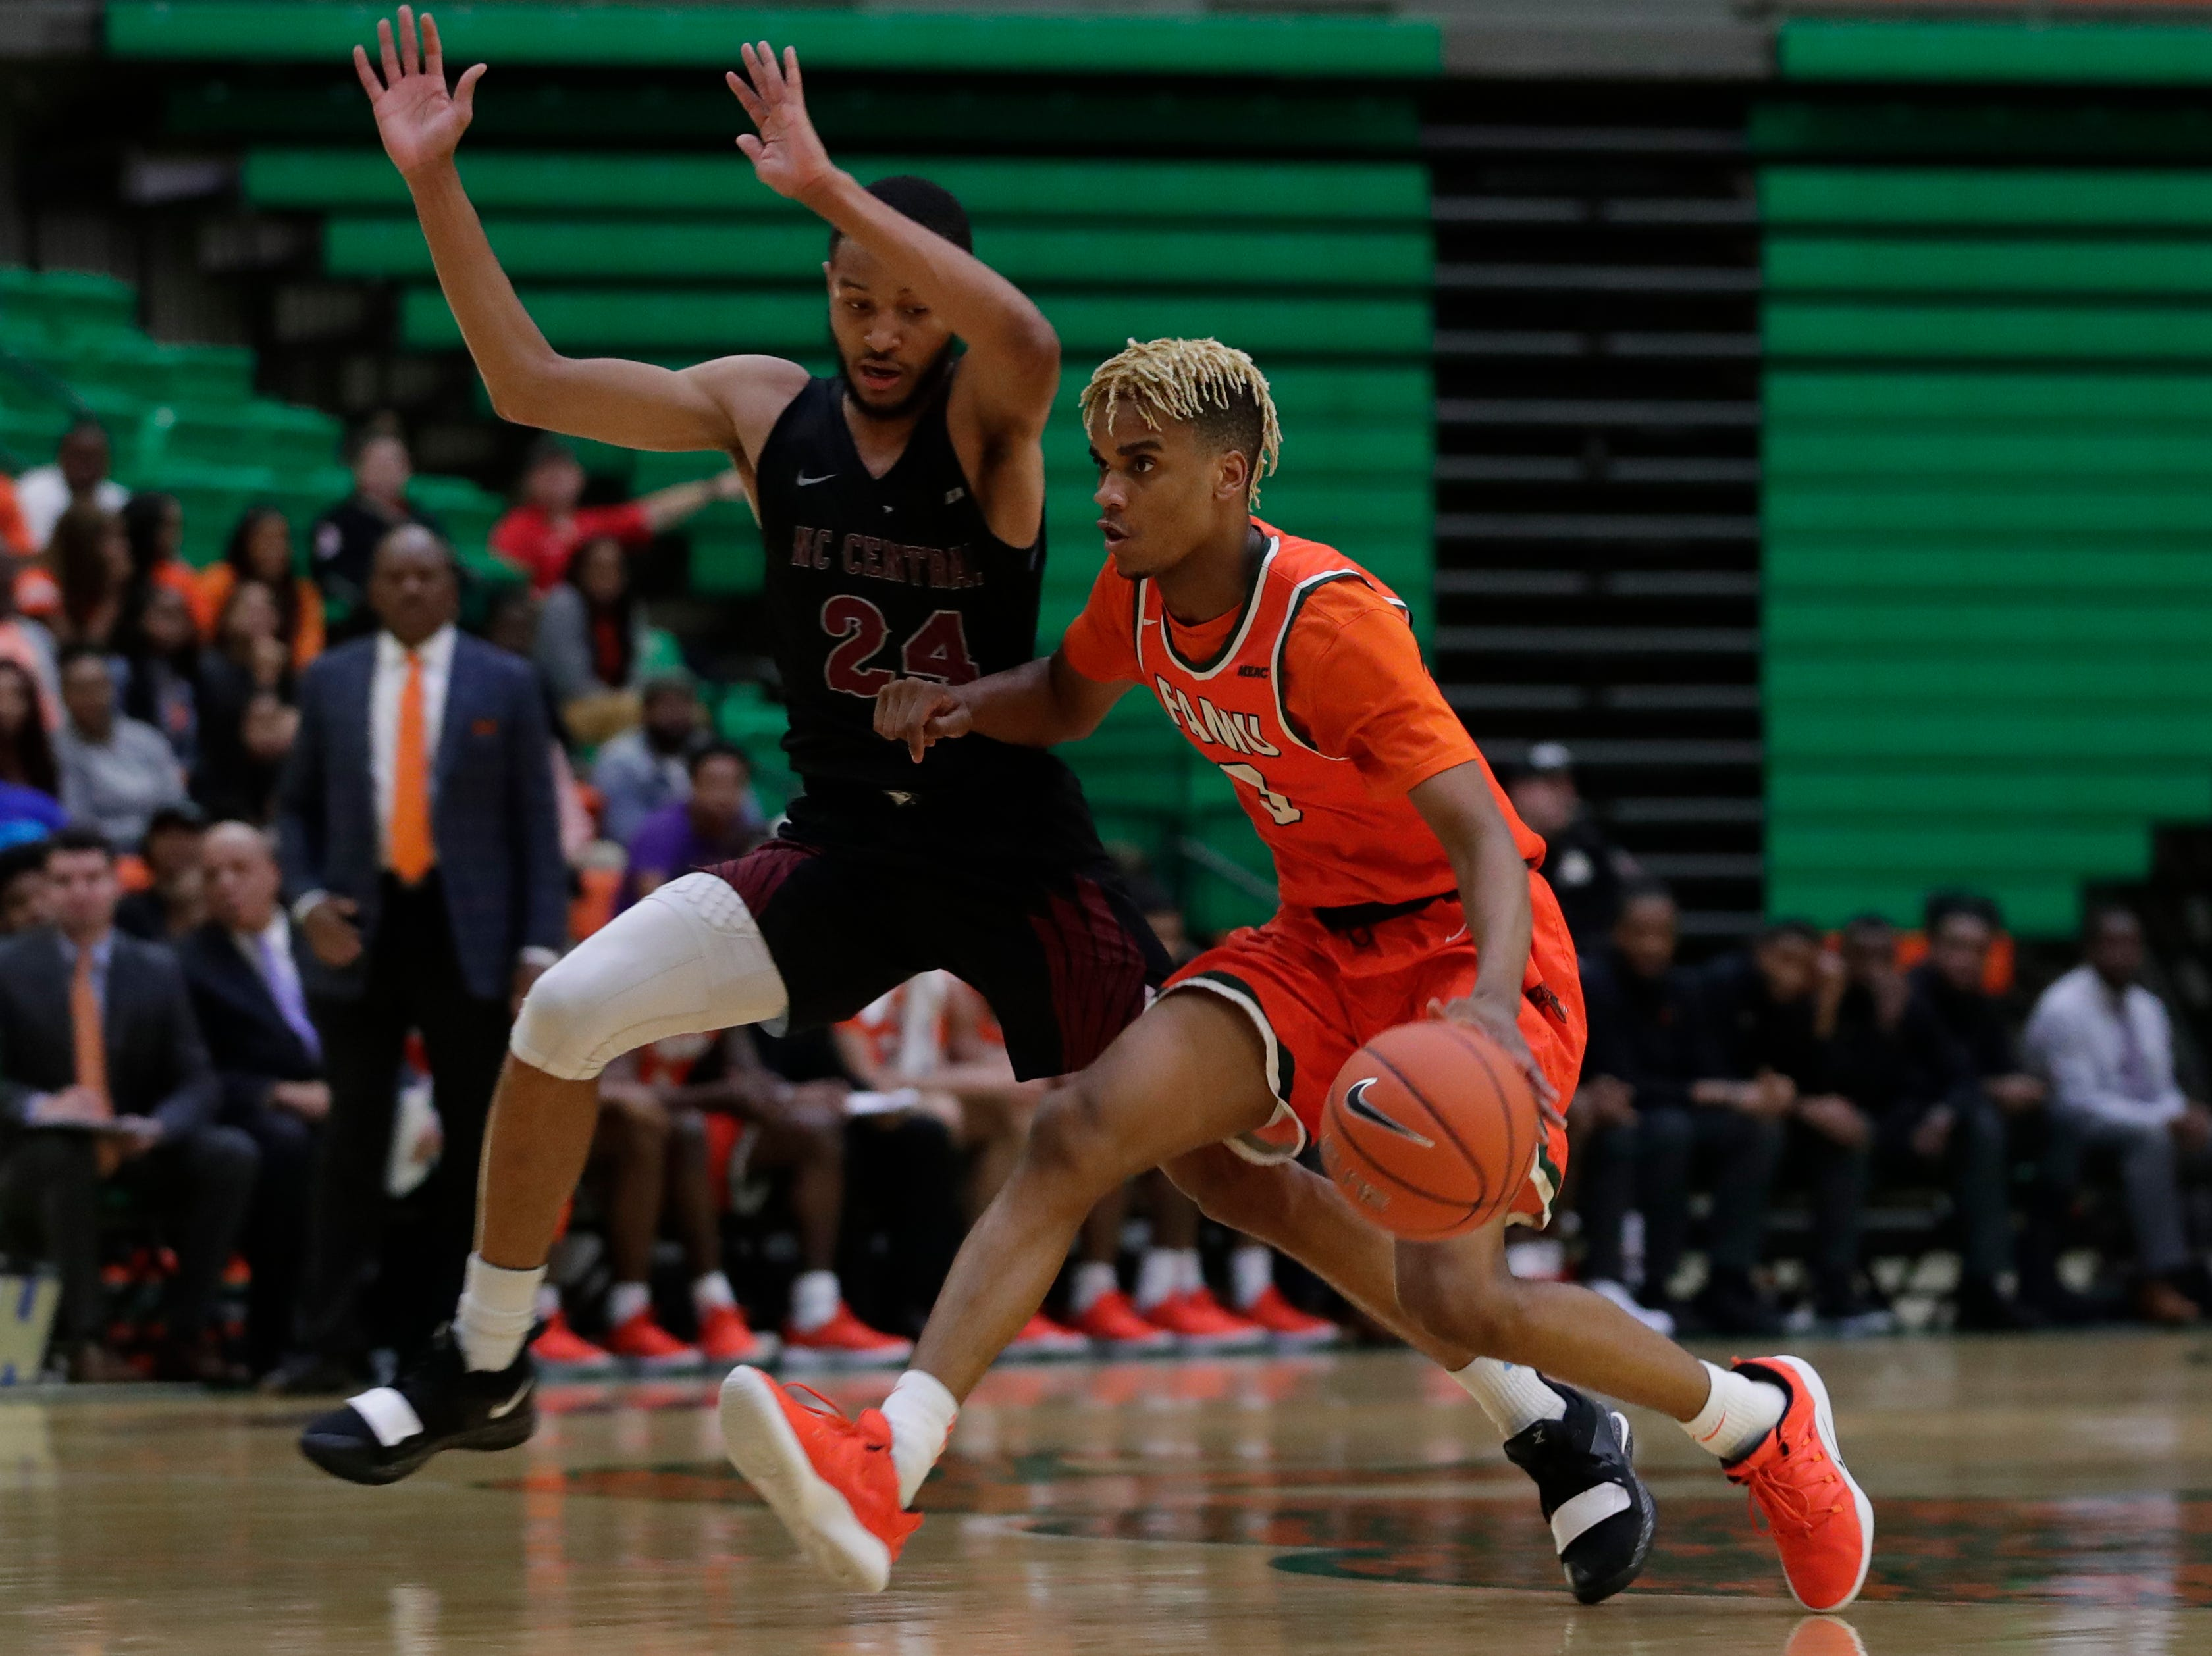 Florida A&M Rattlers guard MJ Randolph (3) dribbles past a defender during a game between FAMU and North Carolina Central at the Alfred Lawson Jr. Multipurpose Center Monday, Feb. 4, 2019.